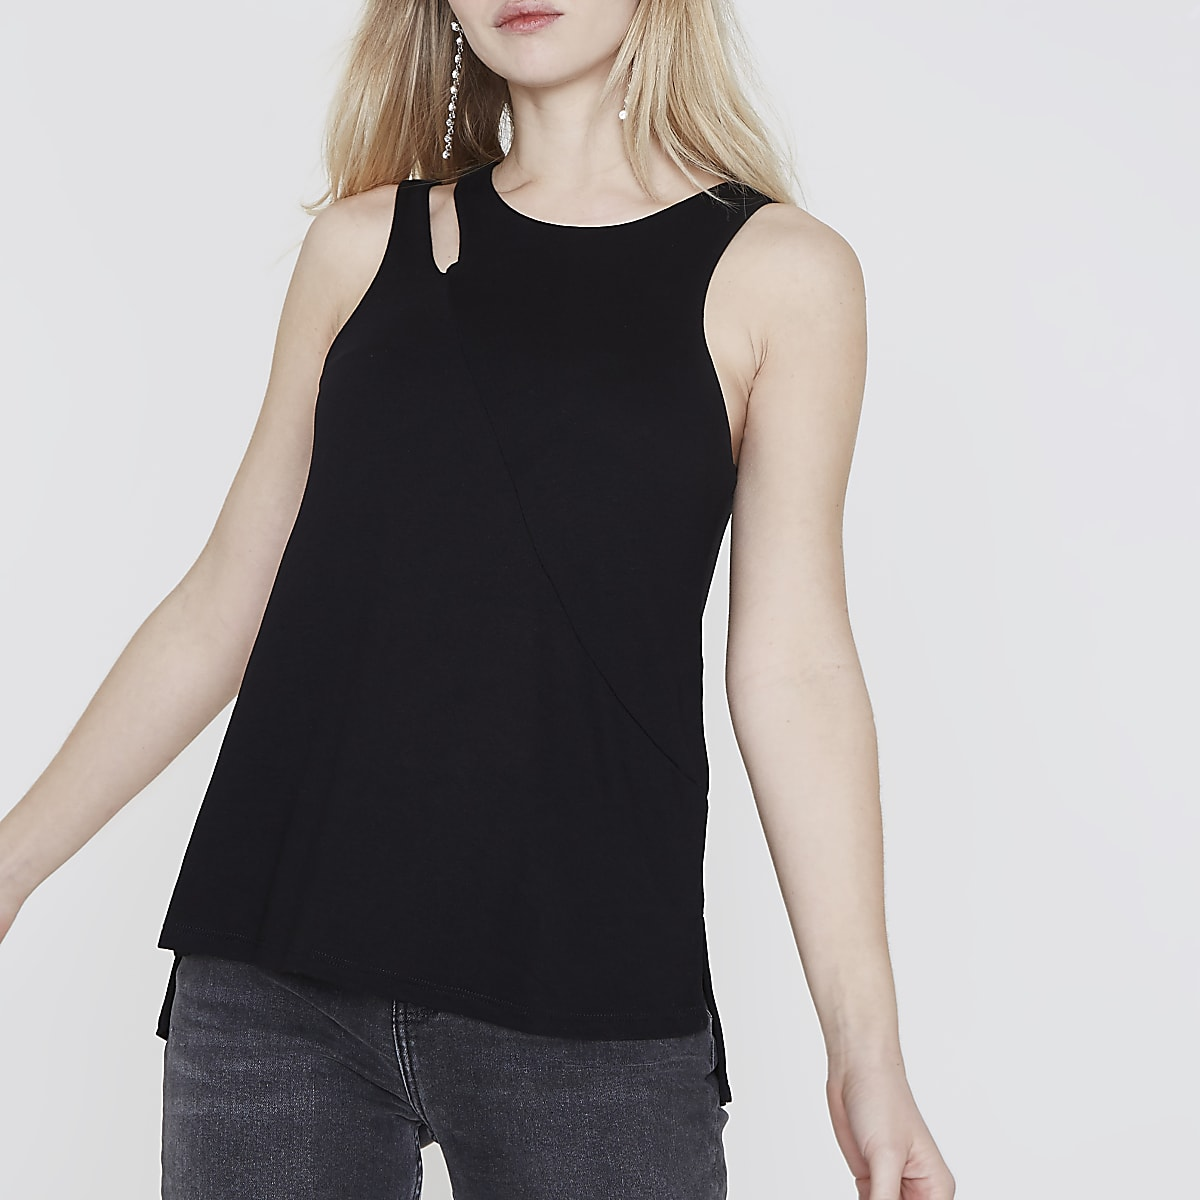 Black cut out shoulder sleeveless top